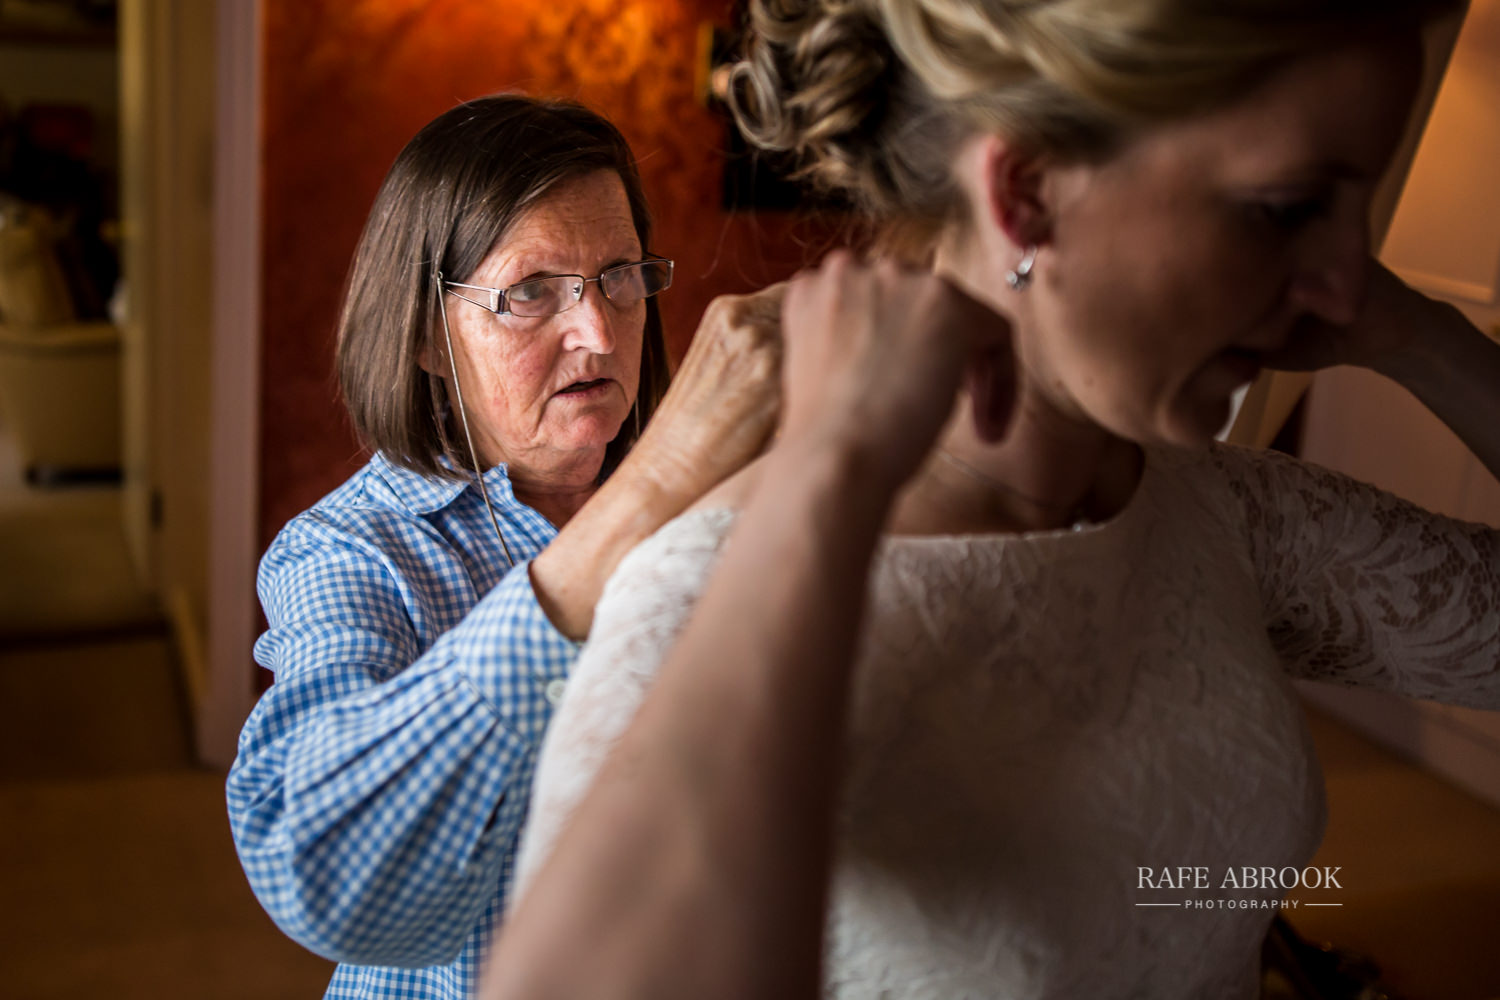 thursley village hall guildford surrey wedding hertfordshire wedding photographer-1068.jpg